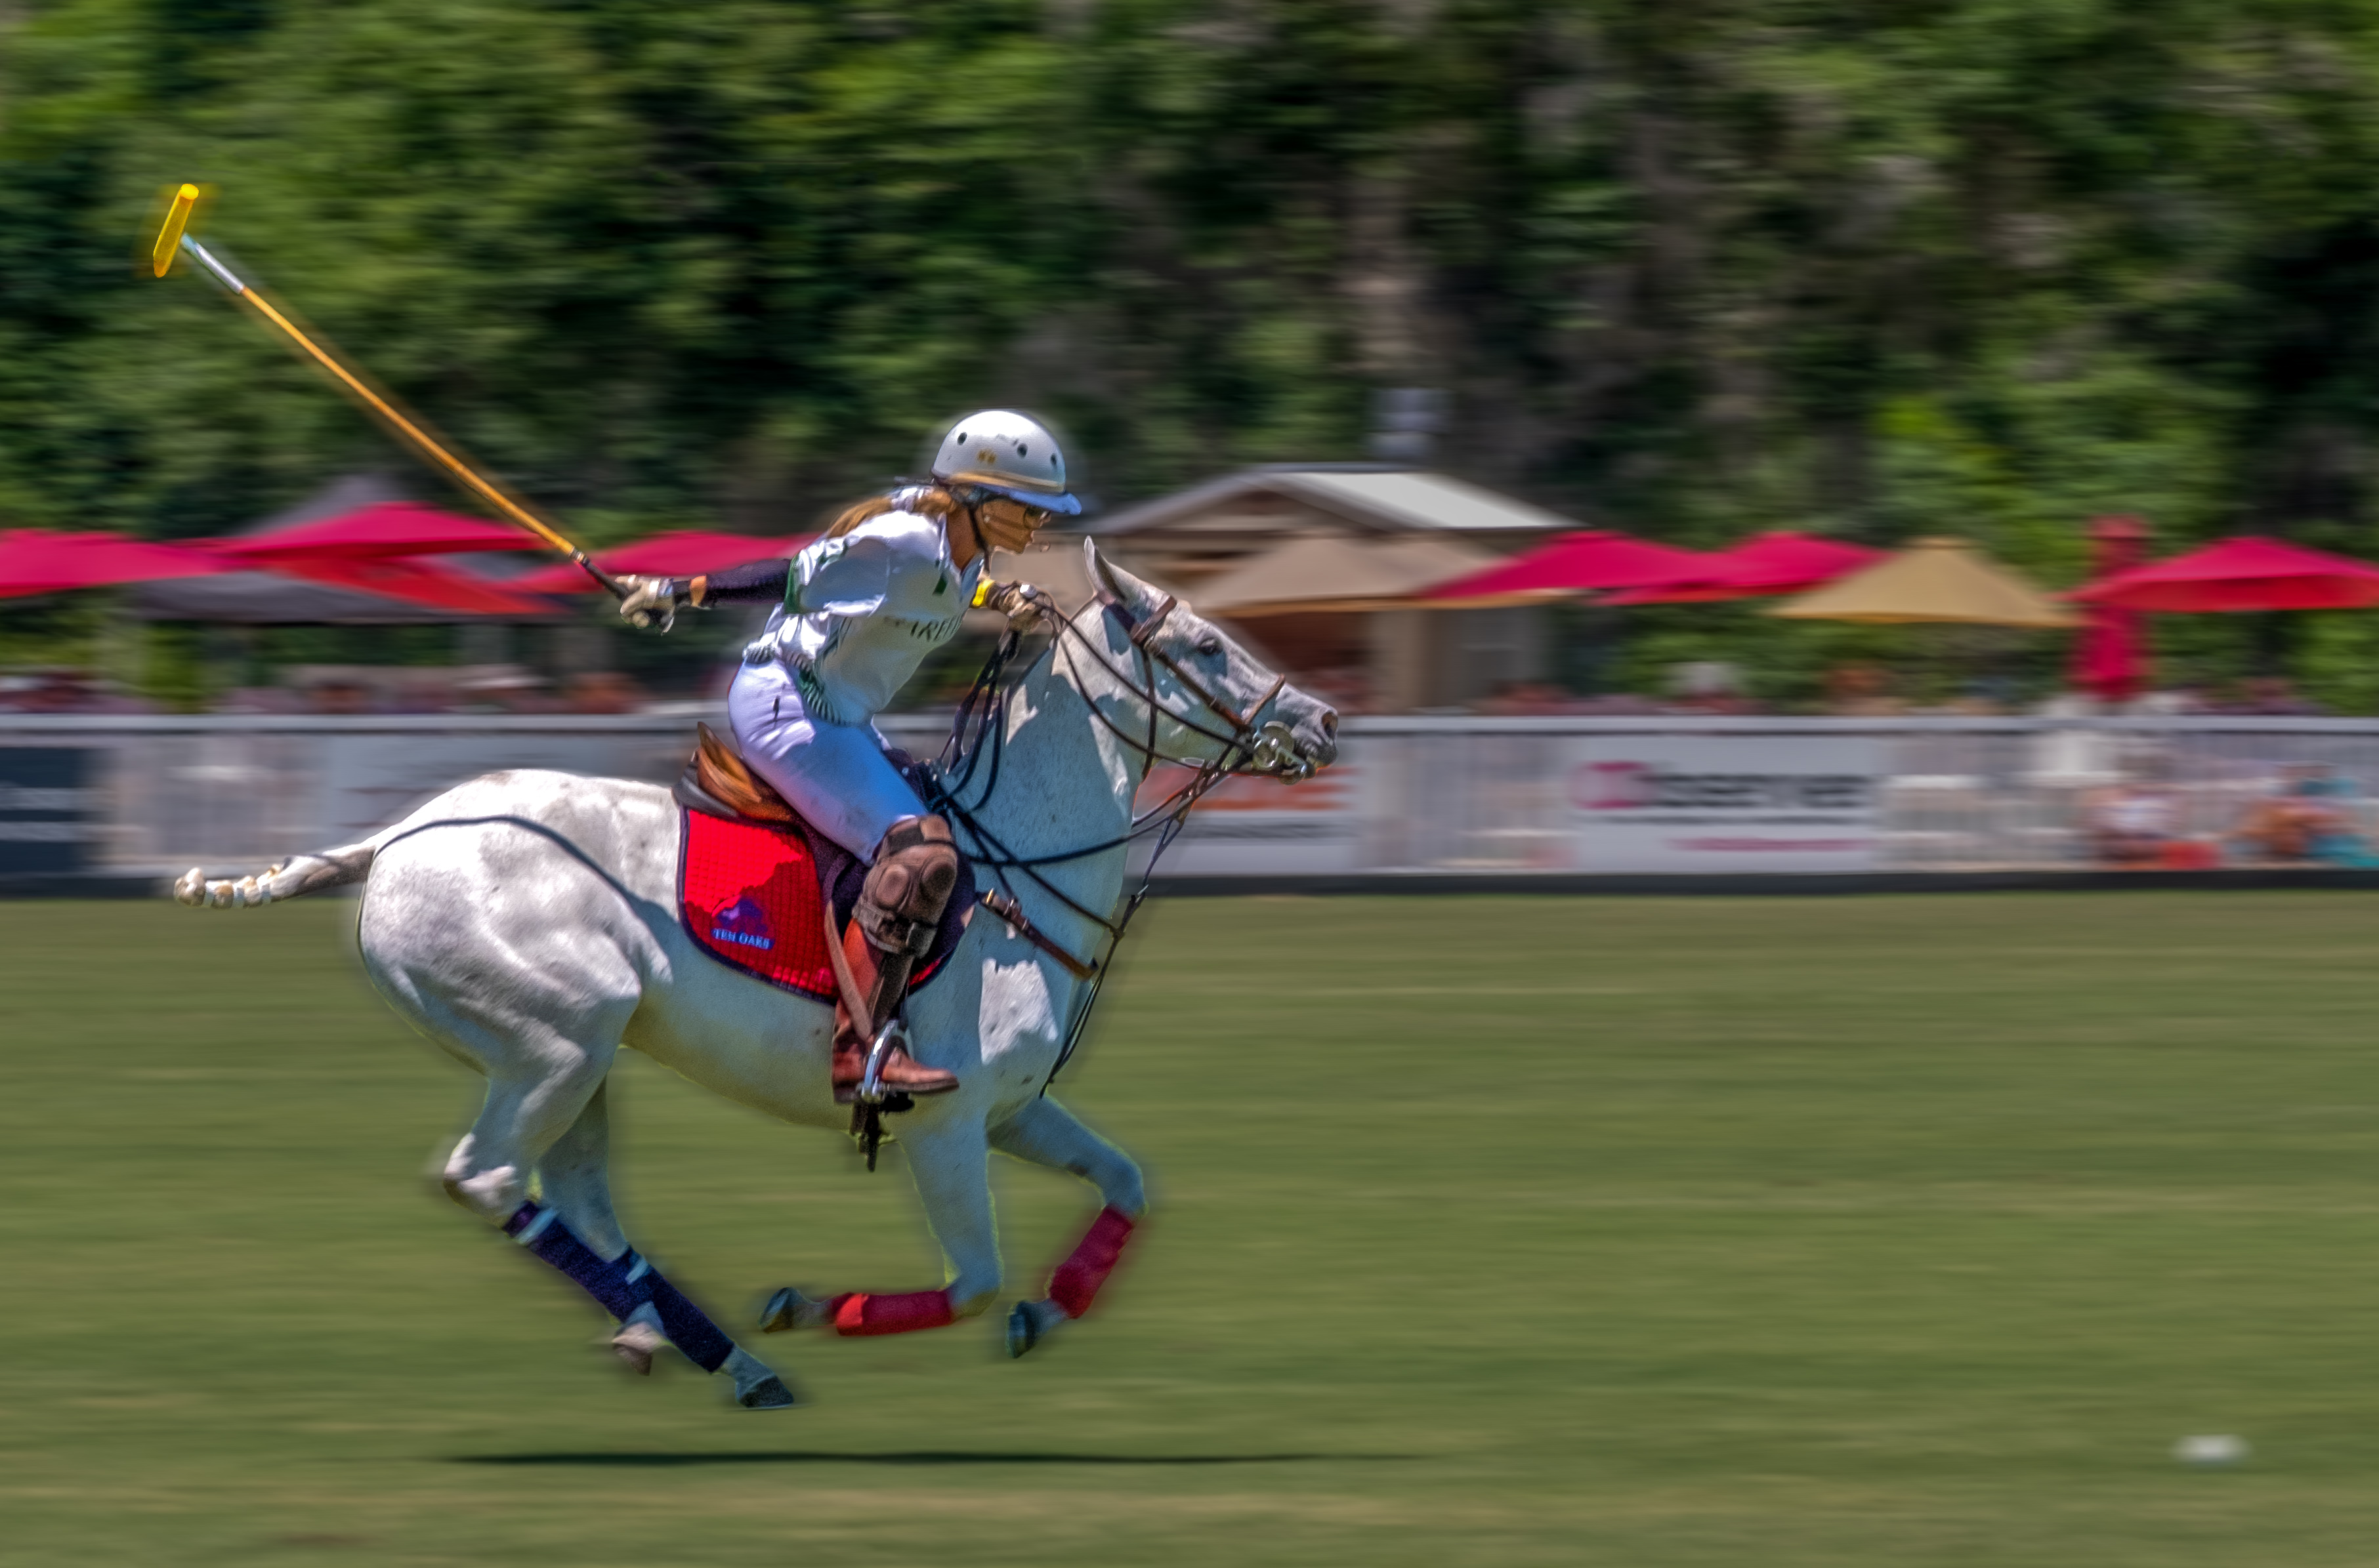 002-Polo-Rider-Barefield-01-Kelly-Beck